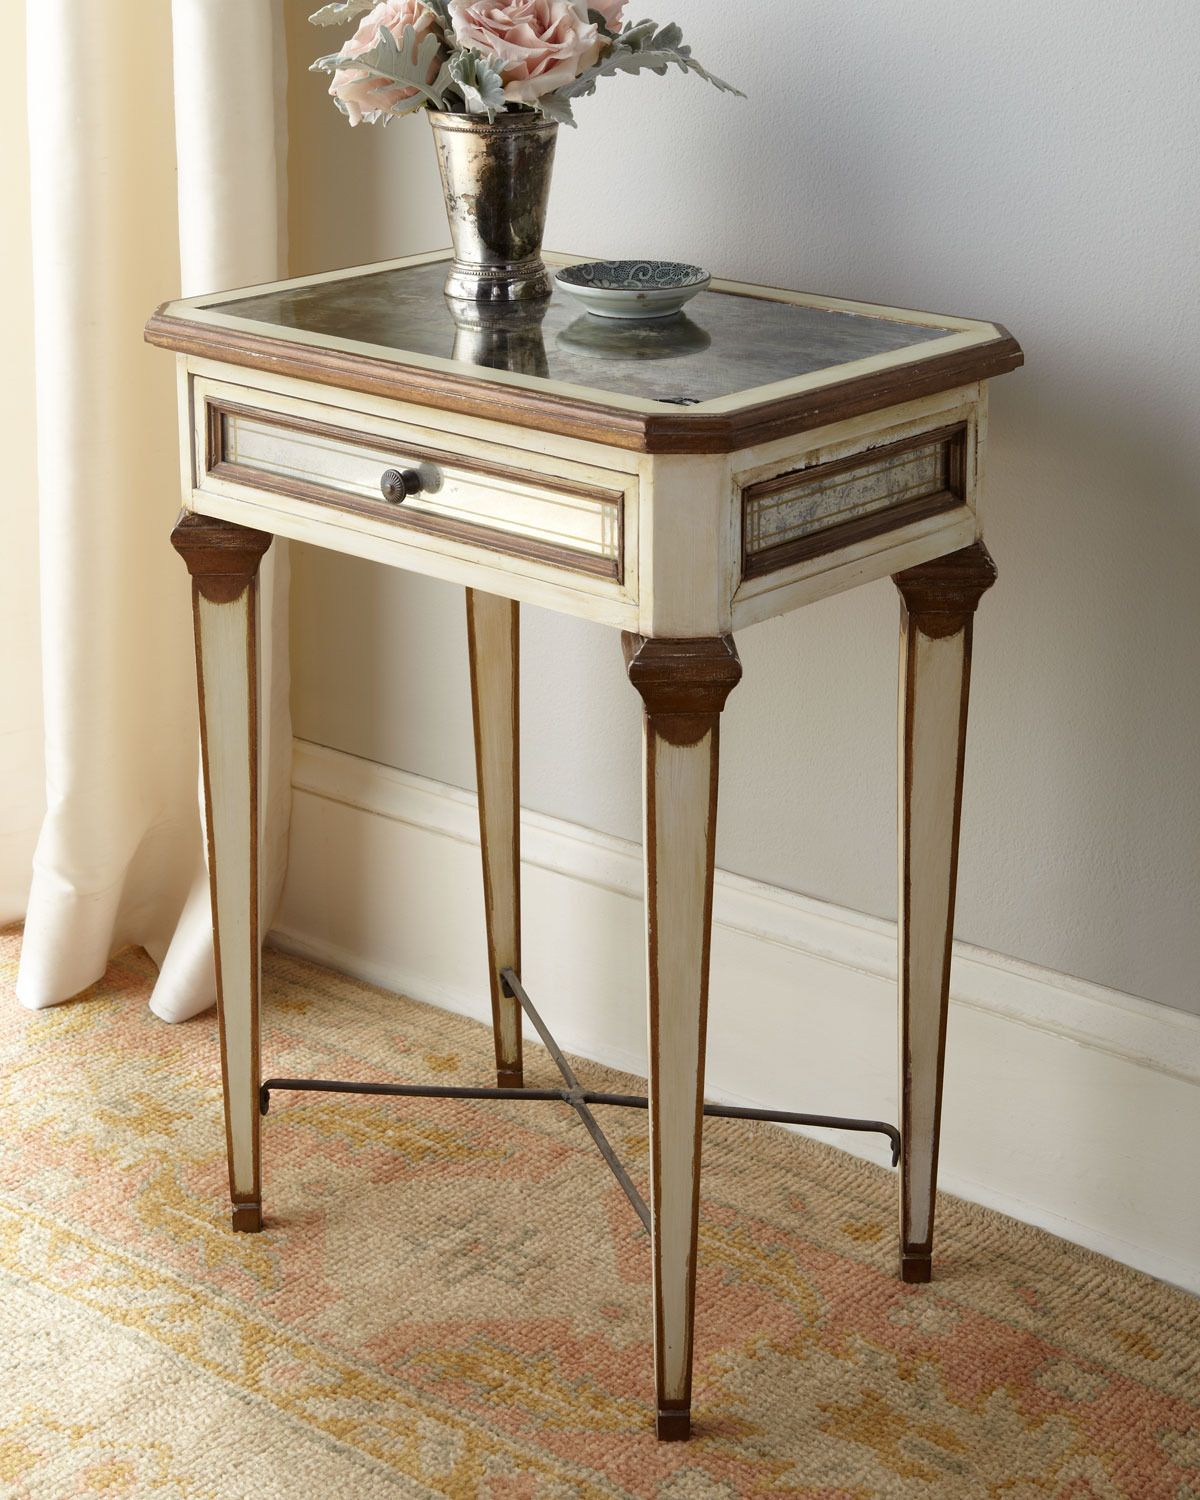 Louis XVI Mirrored Side Table - Tara Shaw ( Bedside tables Wood ...